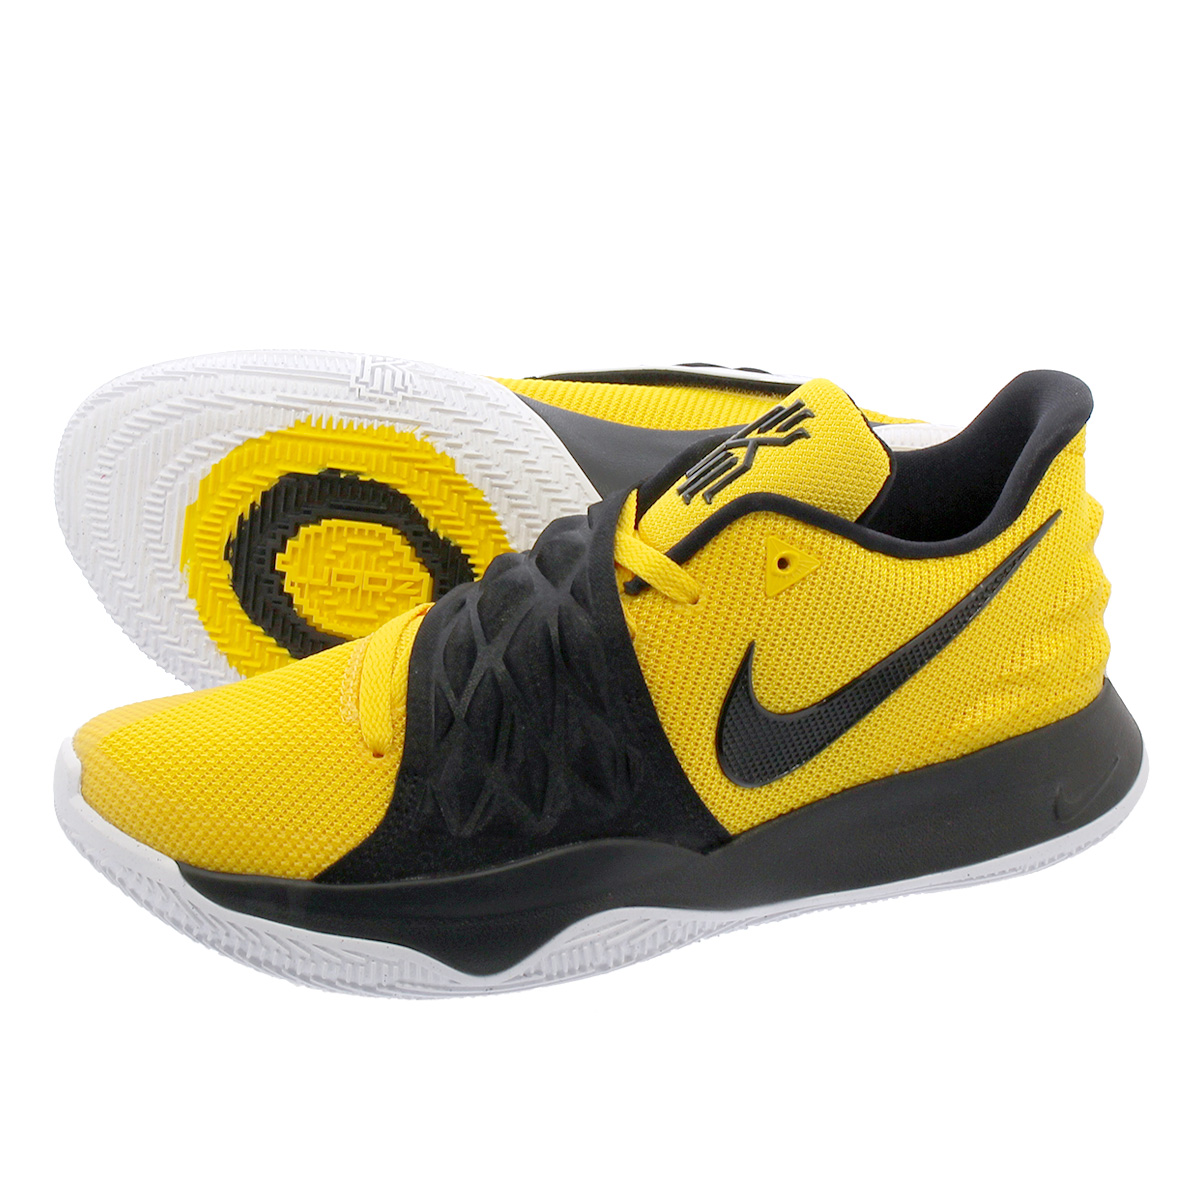 NIKE KYRIE 4 LOW ナイキ カイリー 4 ロー AMARILLO/BLACK ao8979-700